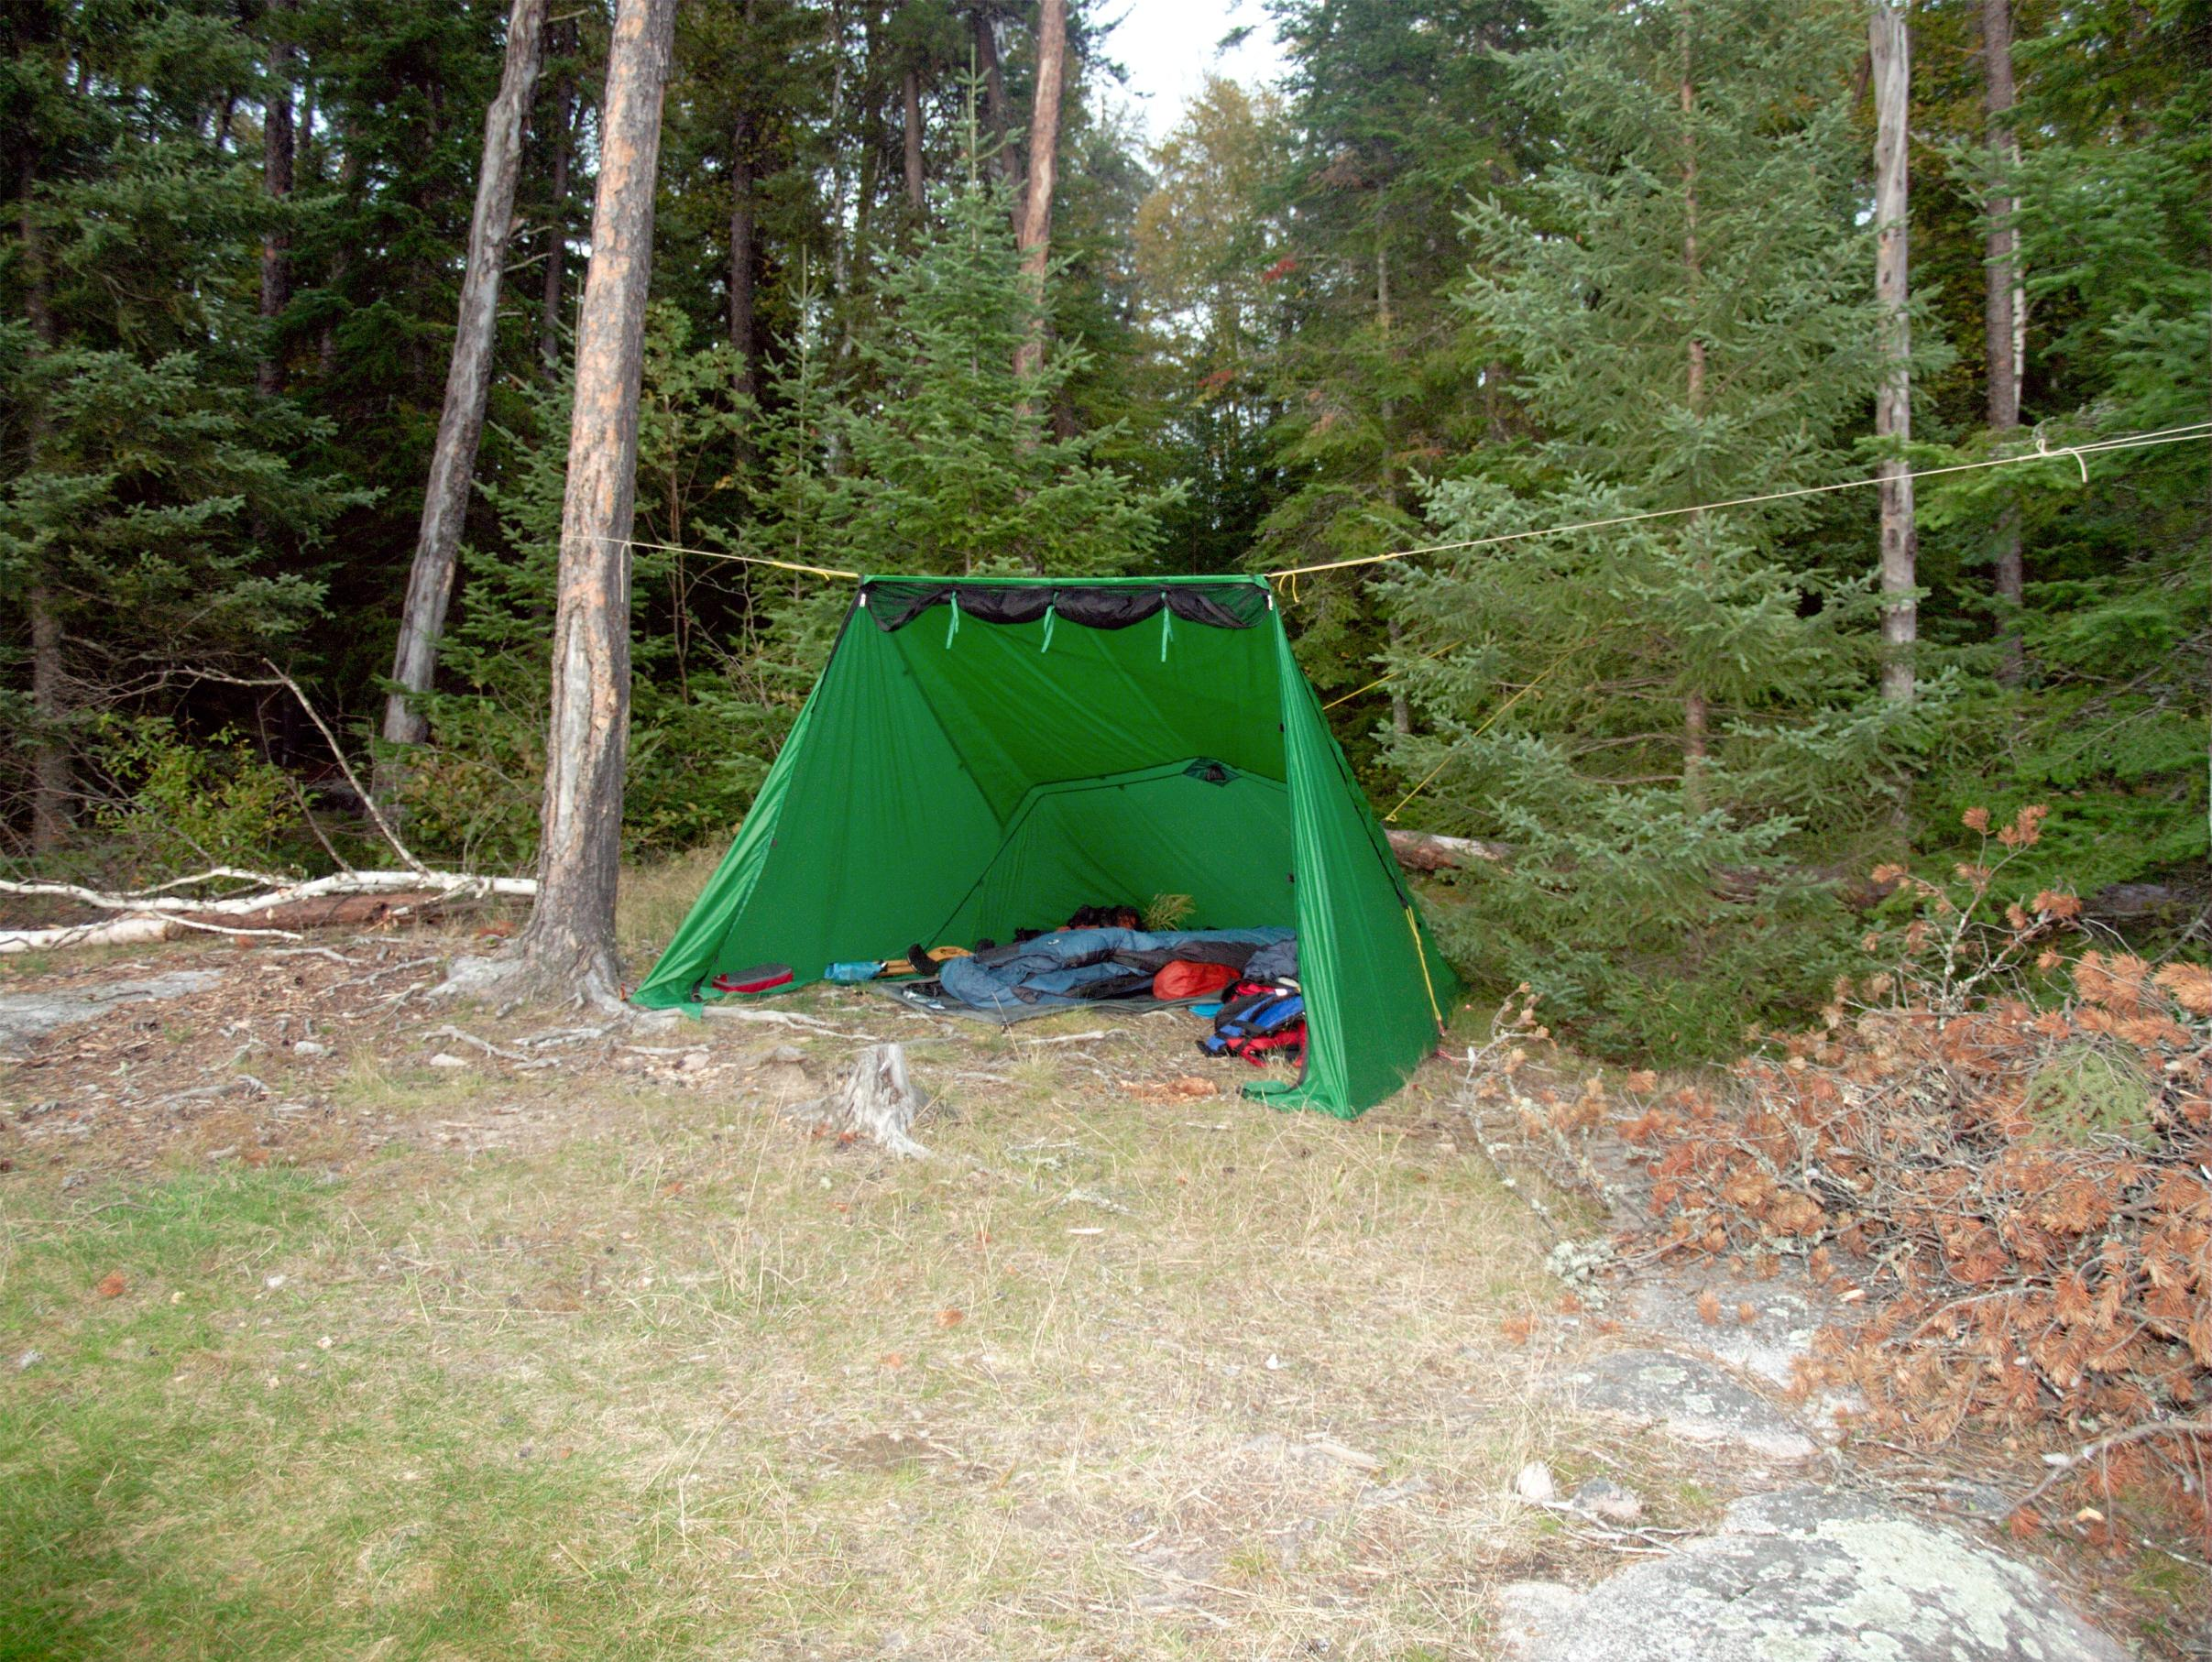 Lean1+ set up fast as a tarp cooked lunch and assembled c& gear in the rain. Then pulled in and down for sleeping after I decided to stay. & BWCA Pitching Tent in the Rain Boundary Waters Gear Forum